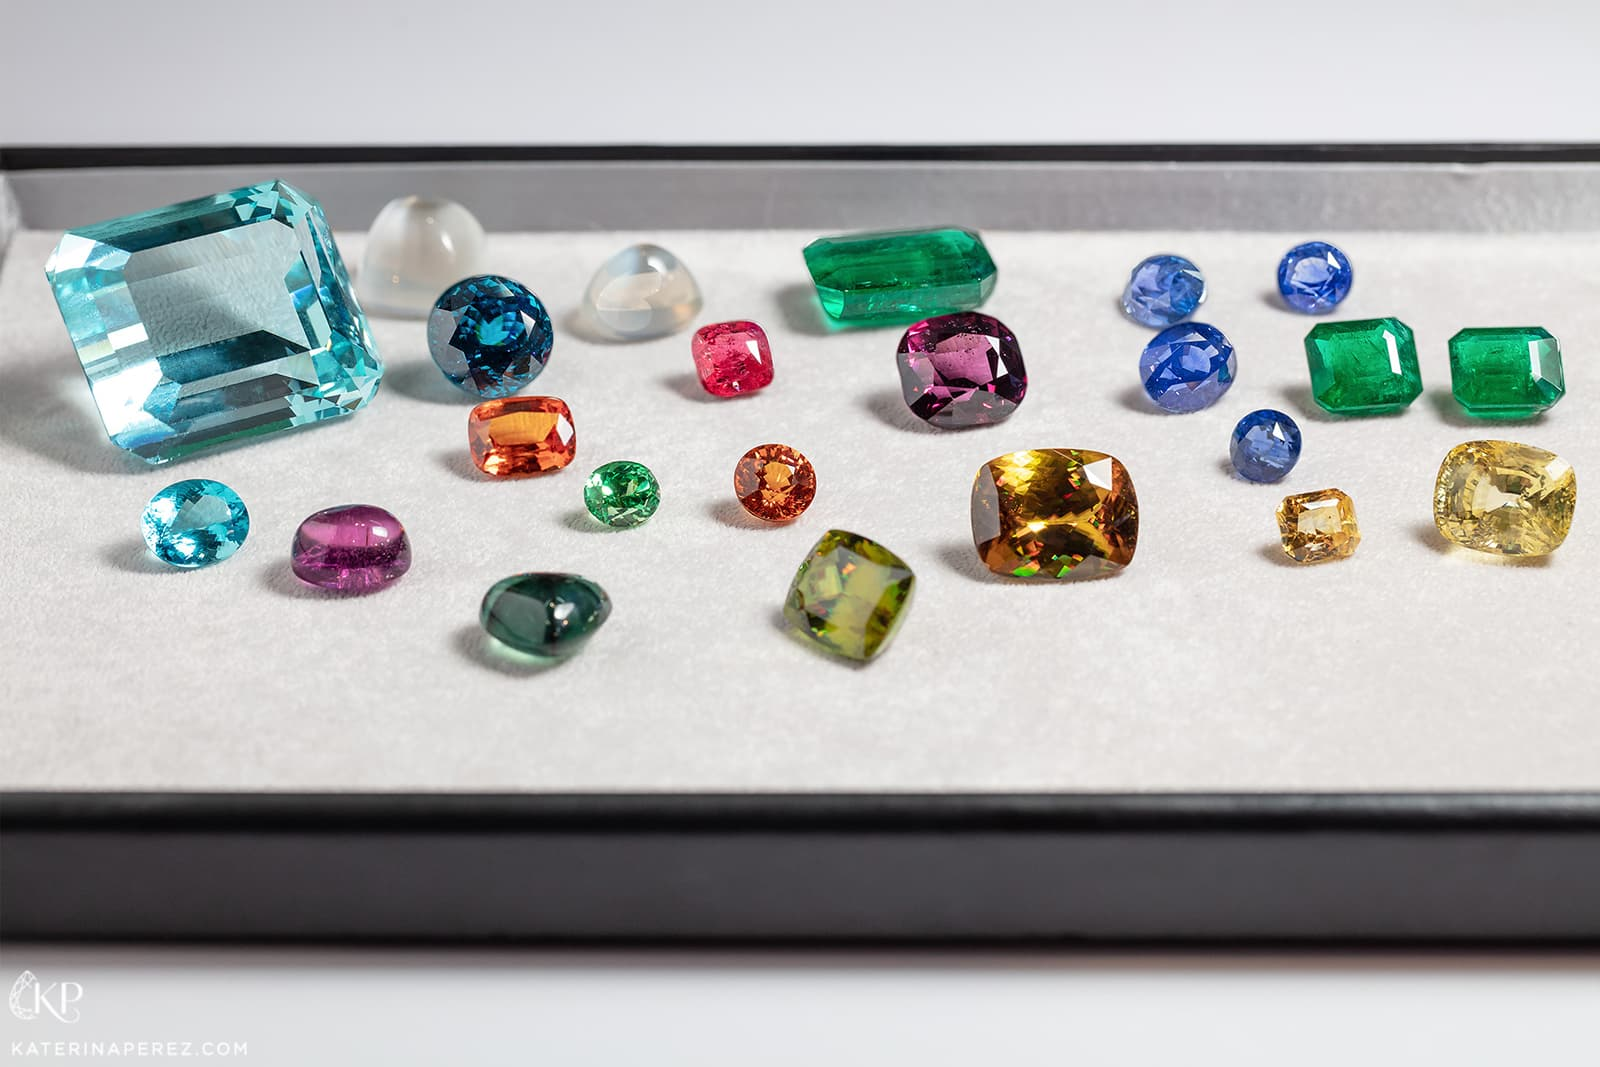 P&P Gems selection of gemstones including 450 cts Brazilian aquamarine, Paraiba tourmalines, emeralds, sphenes, spessartite garnets, moonstone and spinels. Photo by Simon Martner